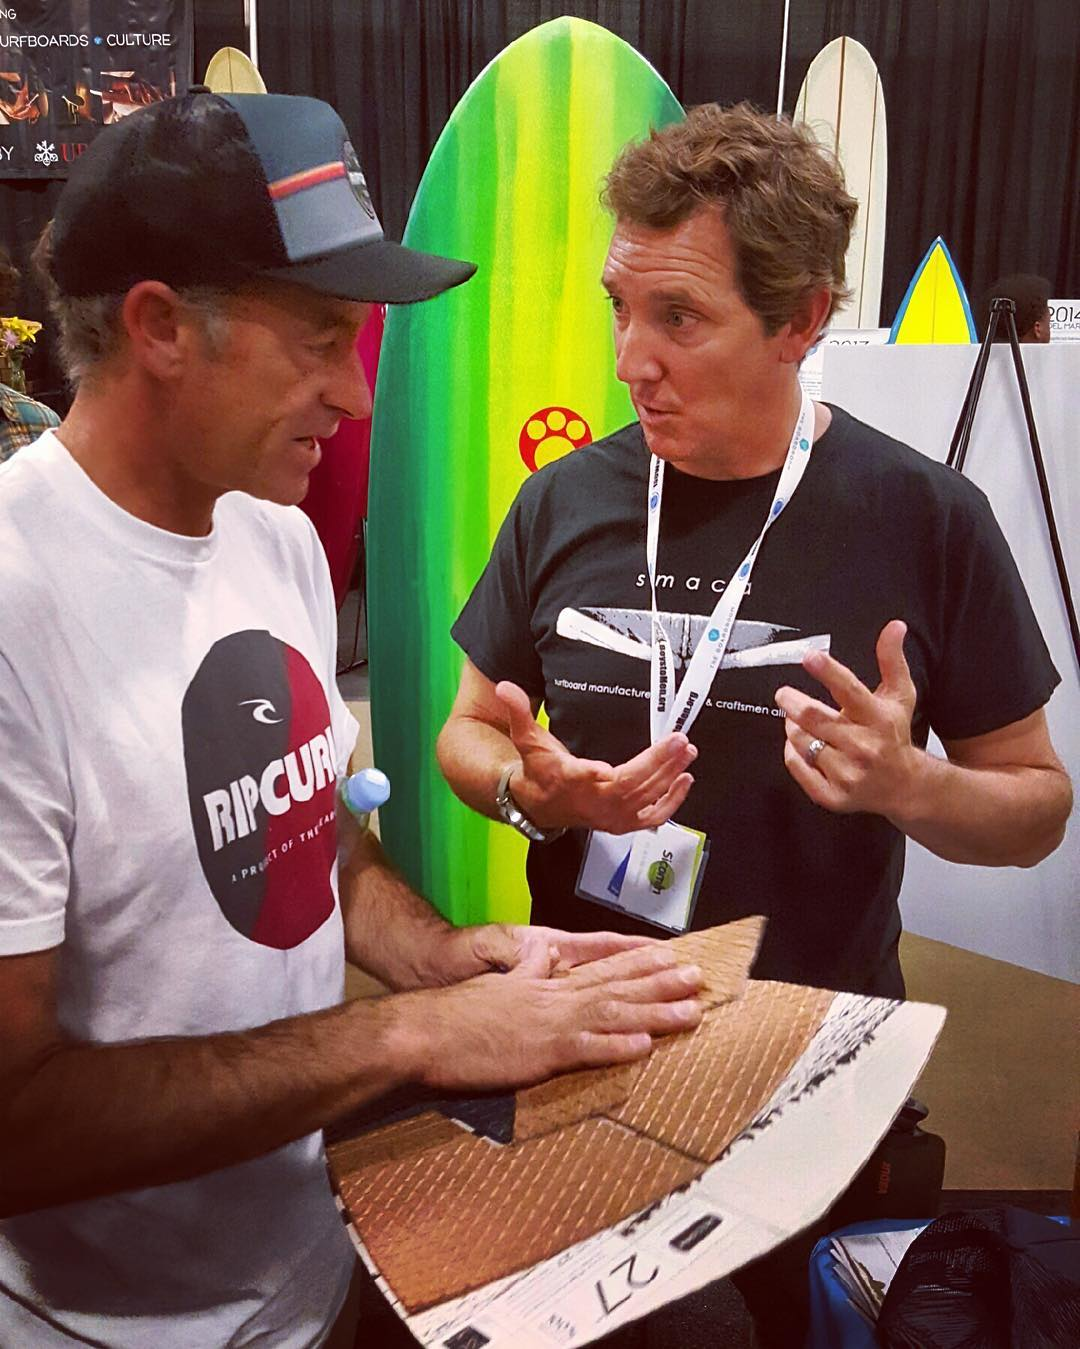 Not sure why...but our @boardroomshow booth always seems to get really #crowded when ambassador #TomCurren  @curfuffle  stops by to check out what we are up to next